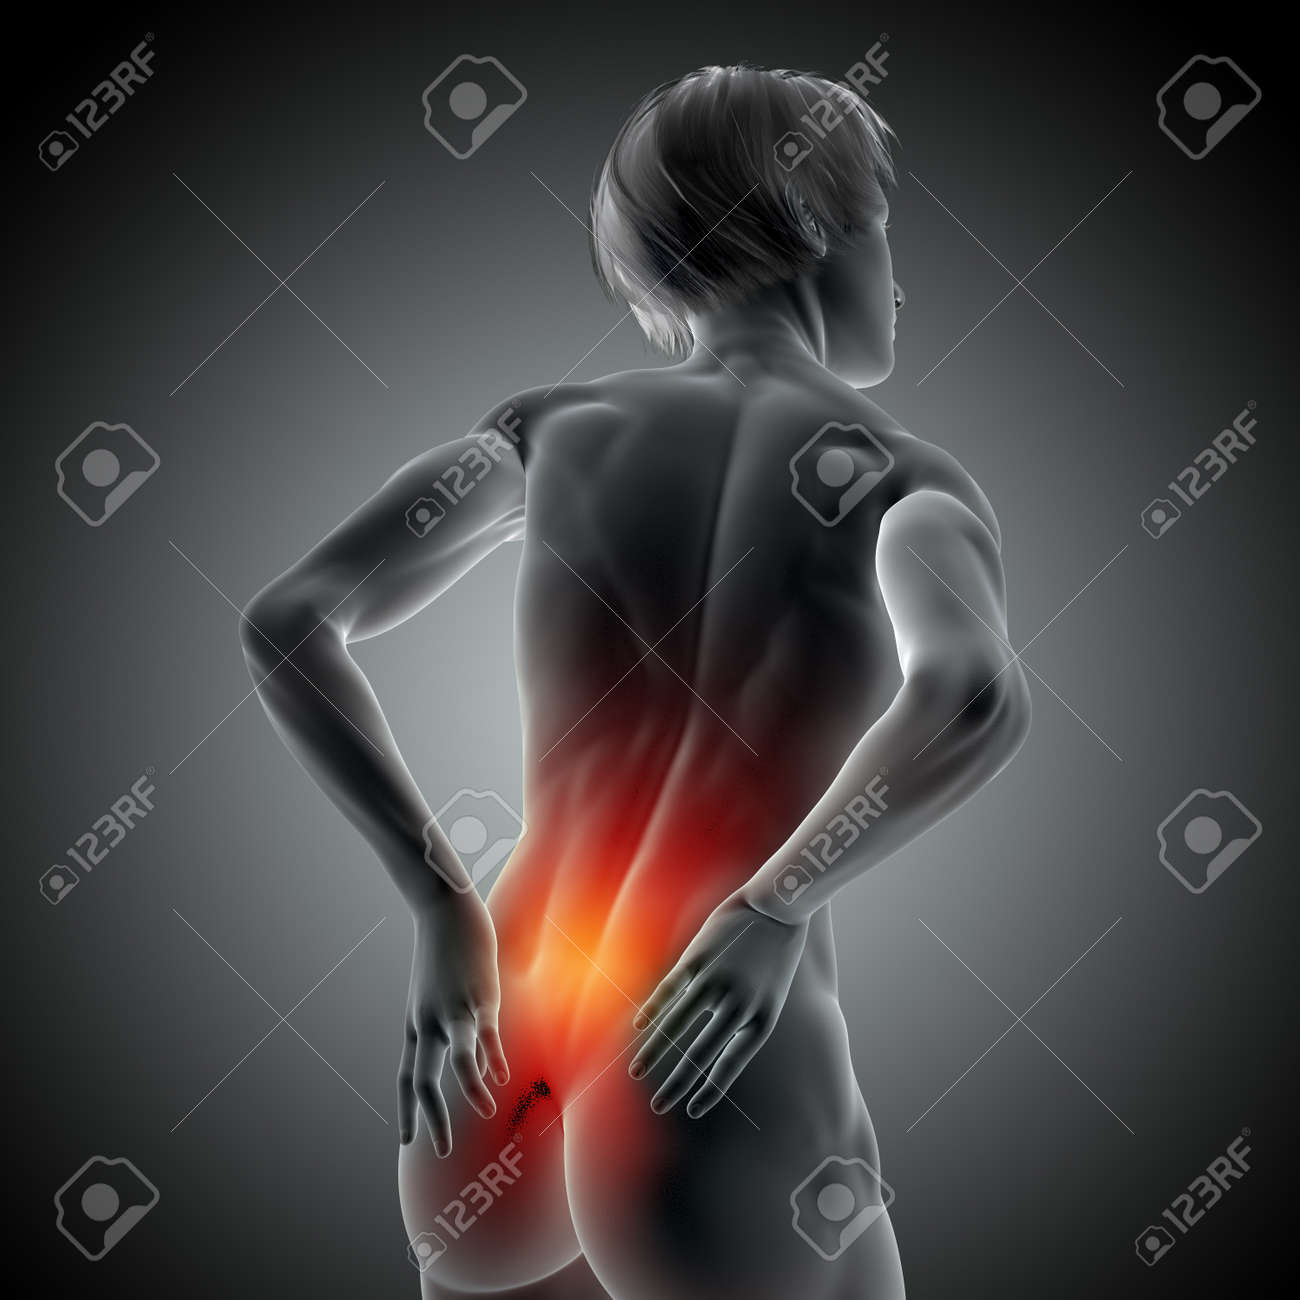 3D render of a medical image with female holding her back in pain - 145691383